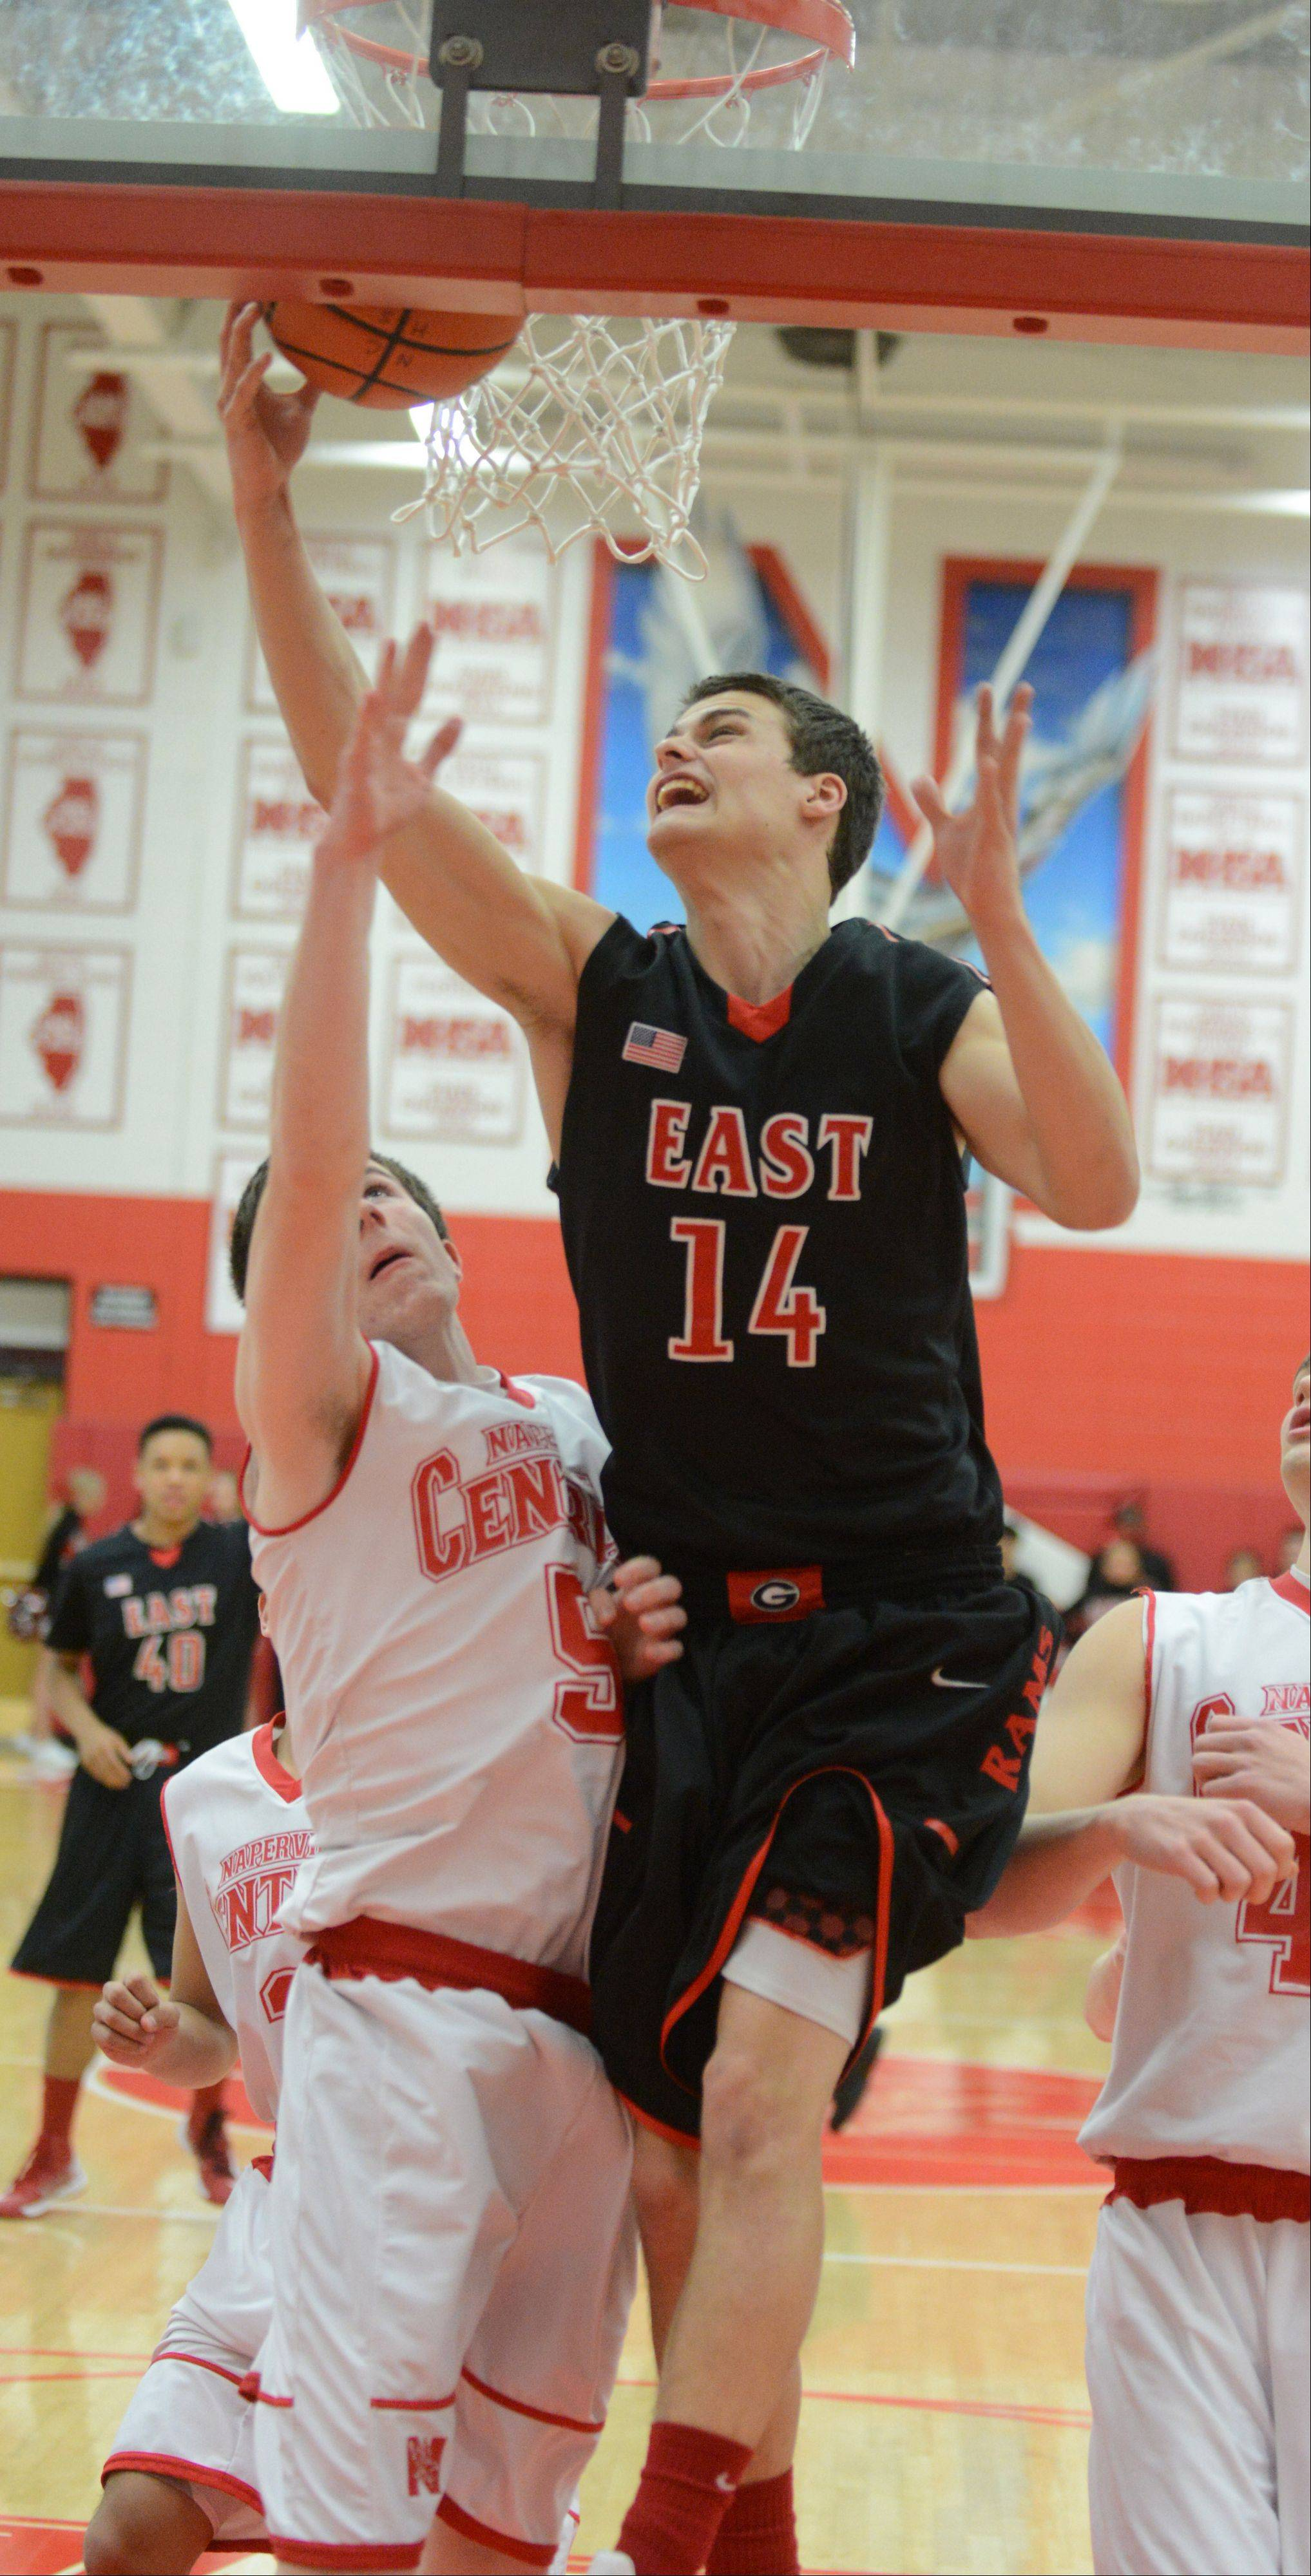 Glenbard East will leave the DuPage Valley Conference for the Upstate Eight Conference, as voted Monday by its school board.